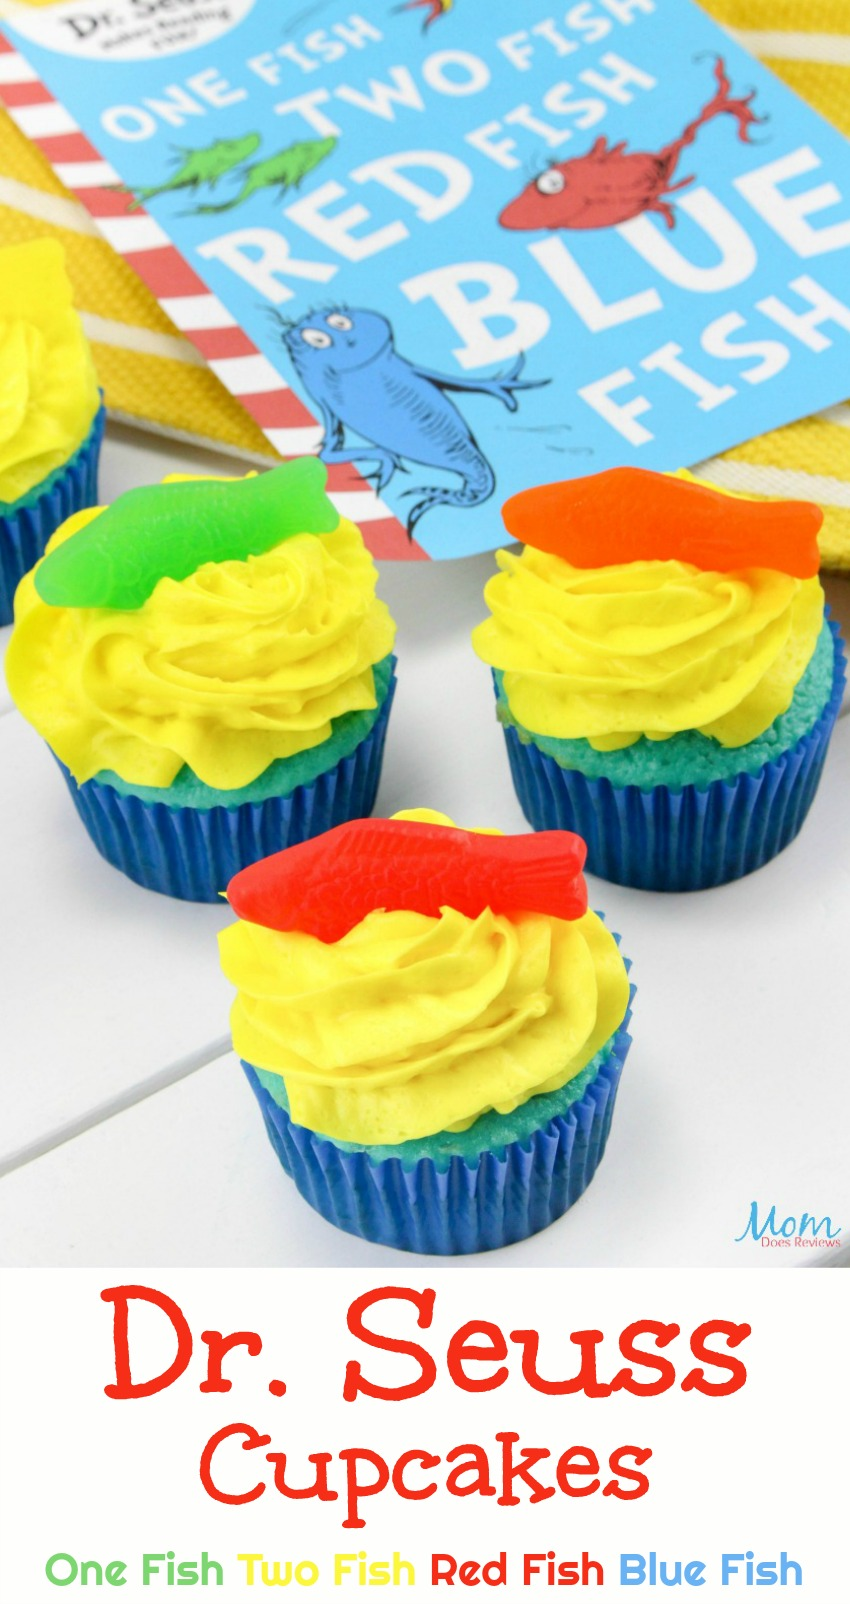 Dr. Seuss Cupcakes One Fish Two Fish Red Fish Blue Fish #cupcakes #desserts #sweets